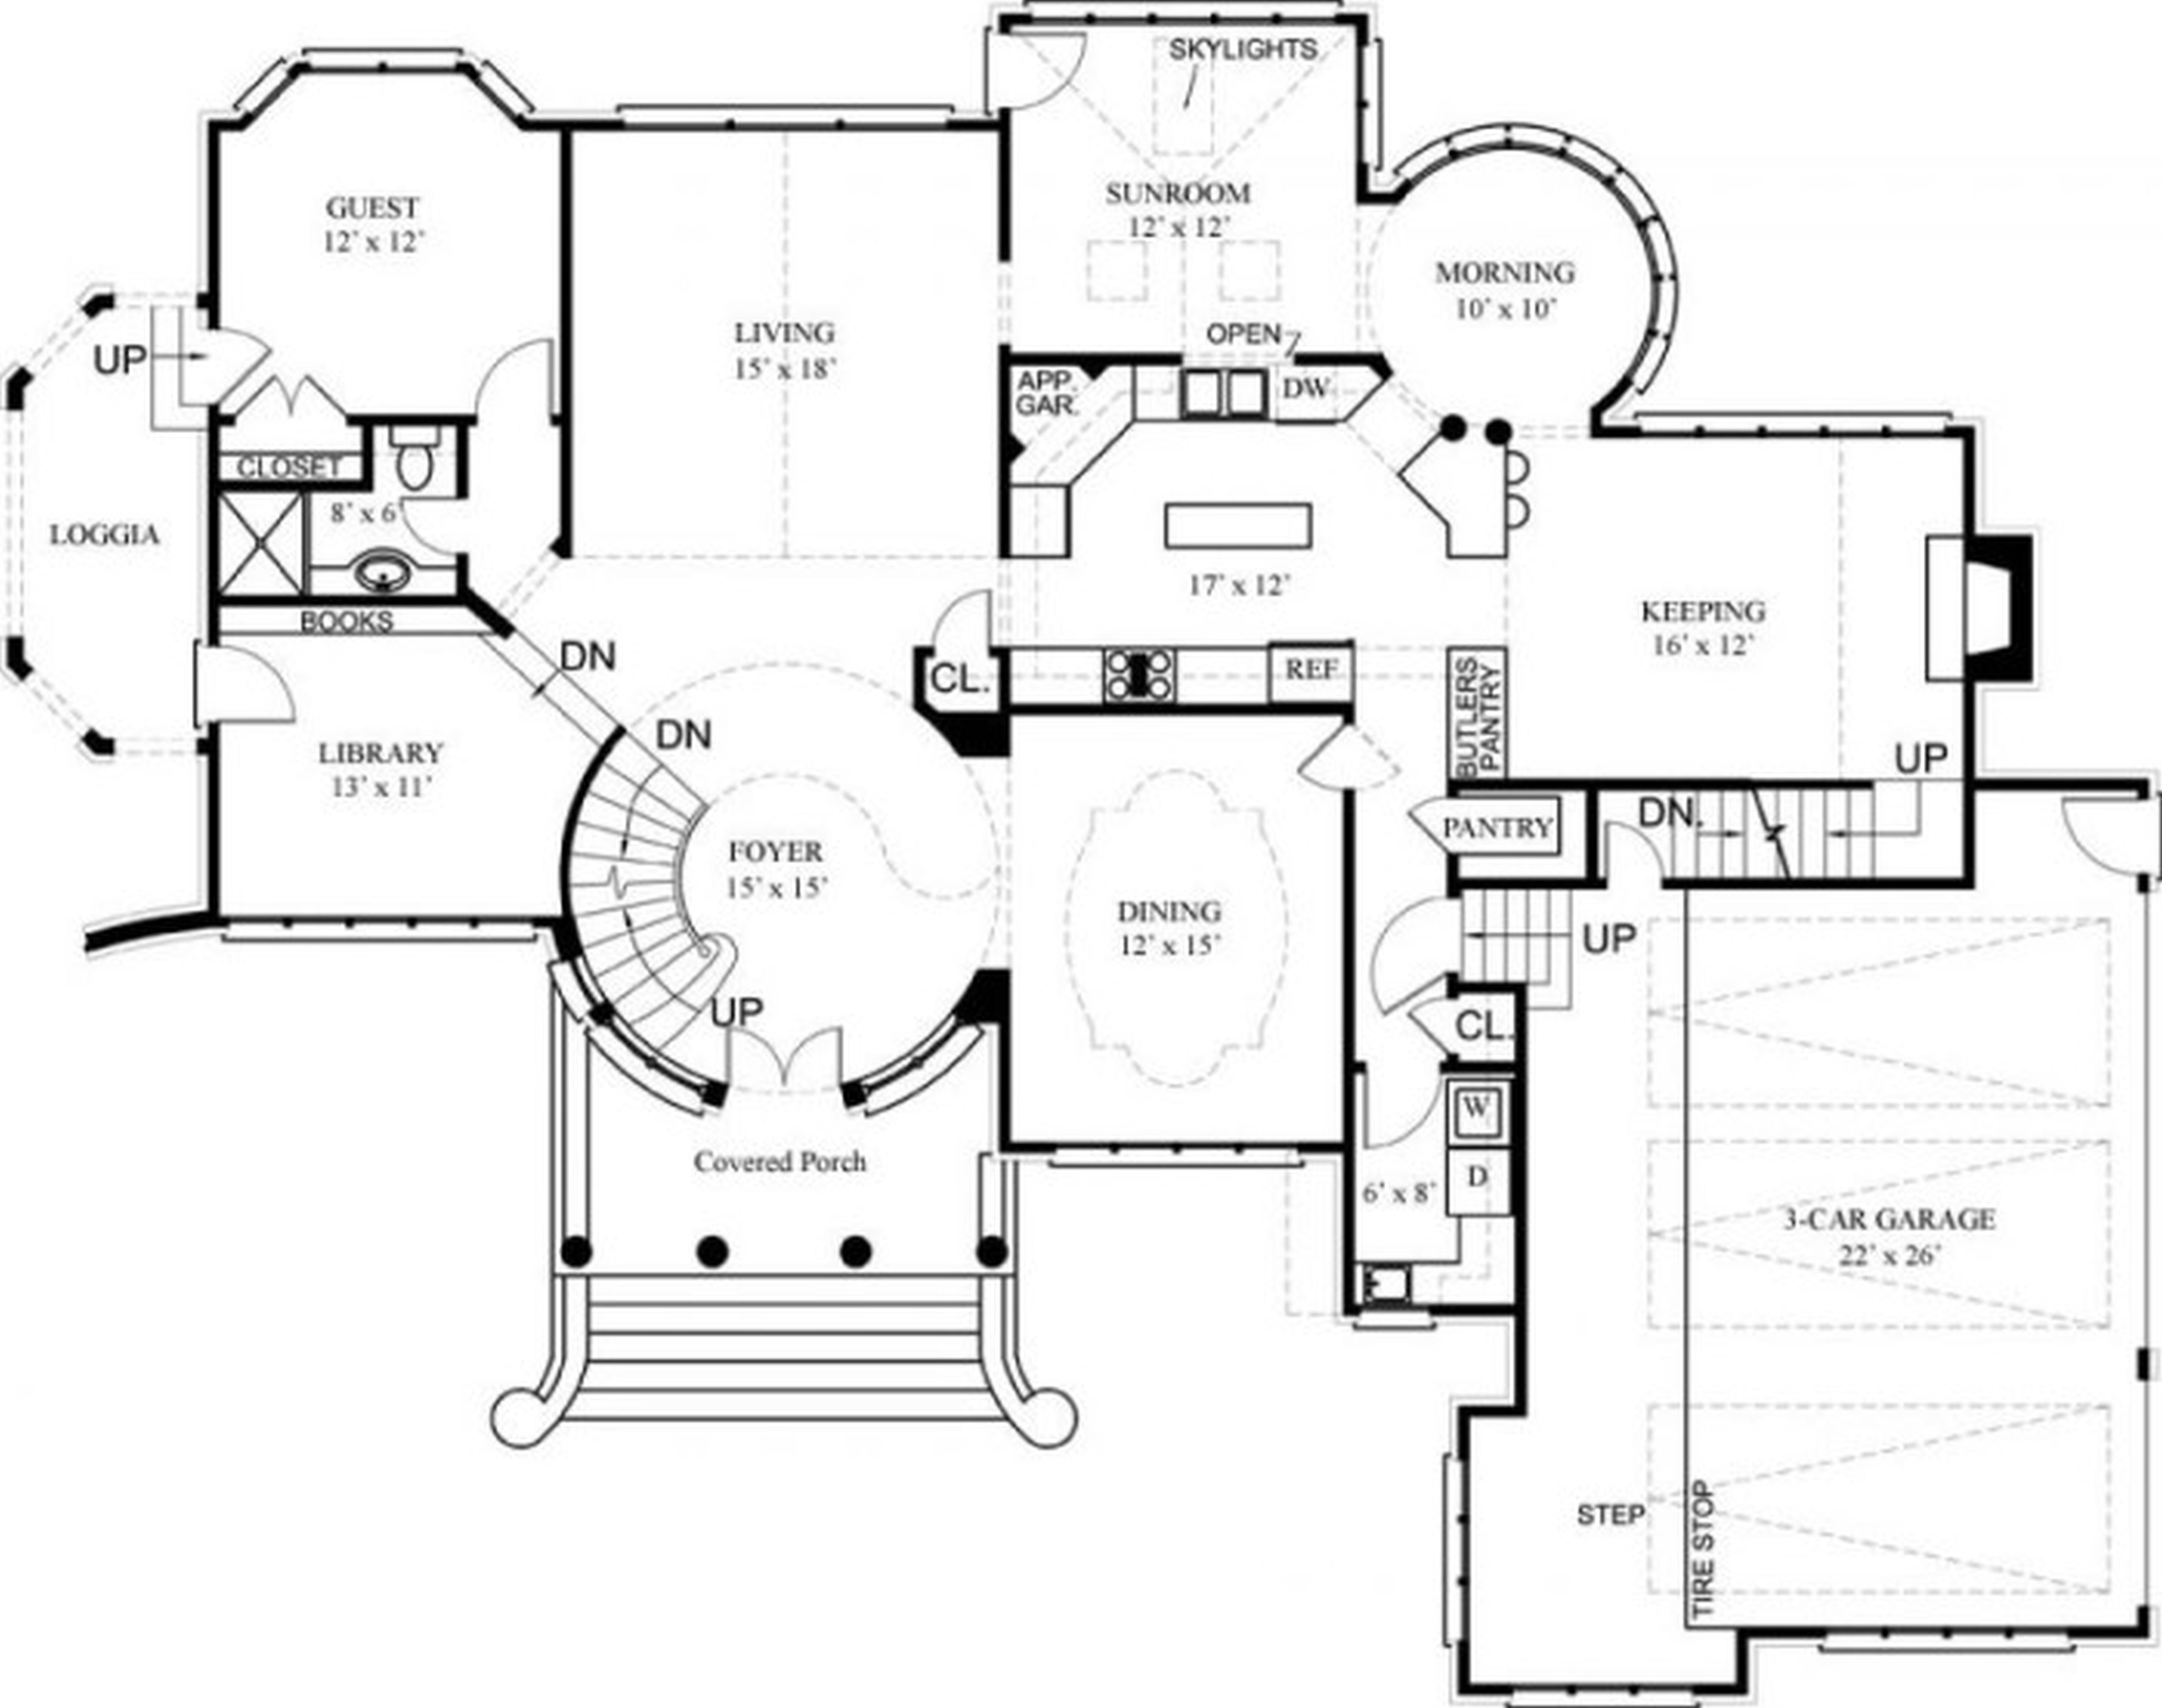 Exterior Luxury House Designs And Floor Plans Castle 700x553 Beautiful House Plans Astonishing Ho Shop House Plans Luxury House Plans Minecraft House Designs